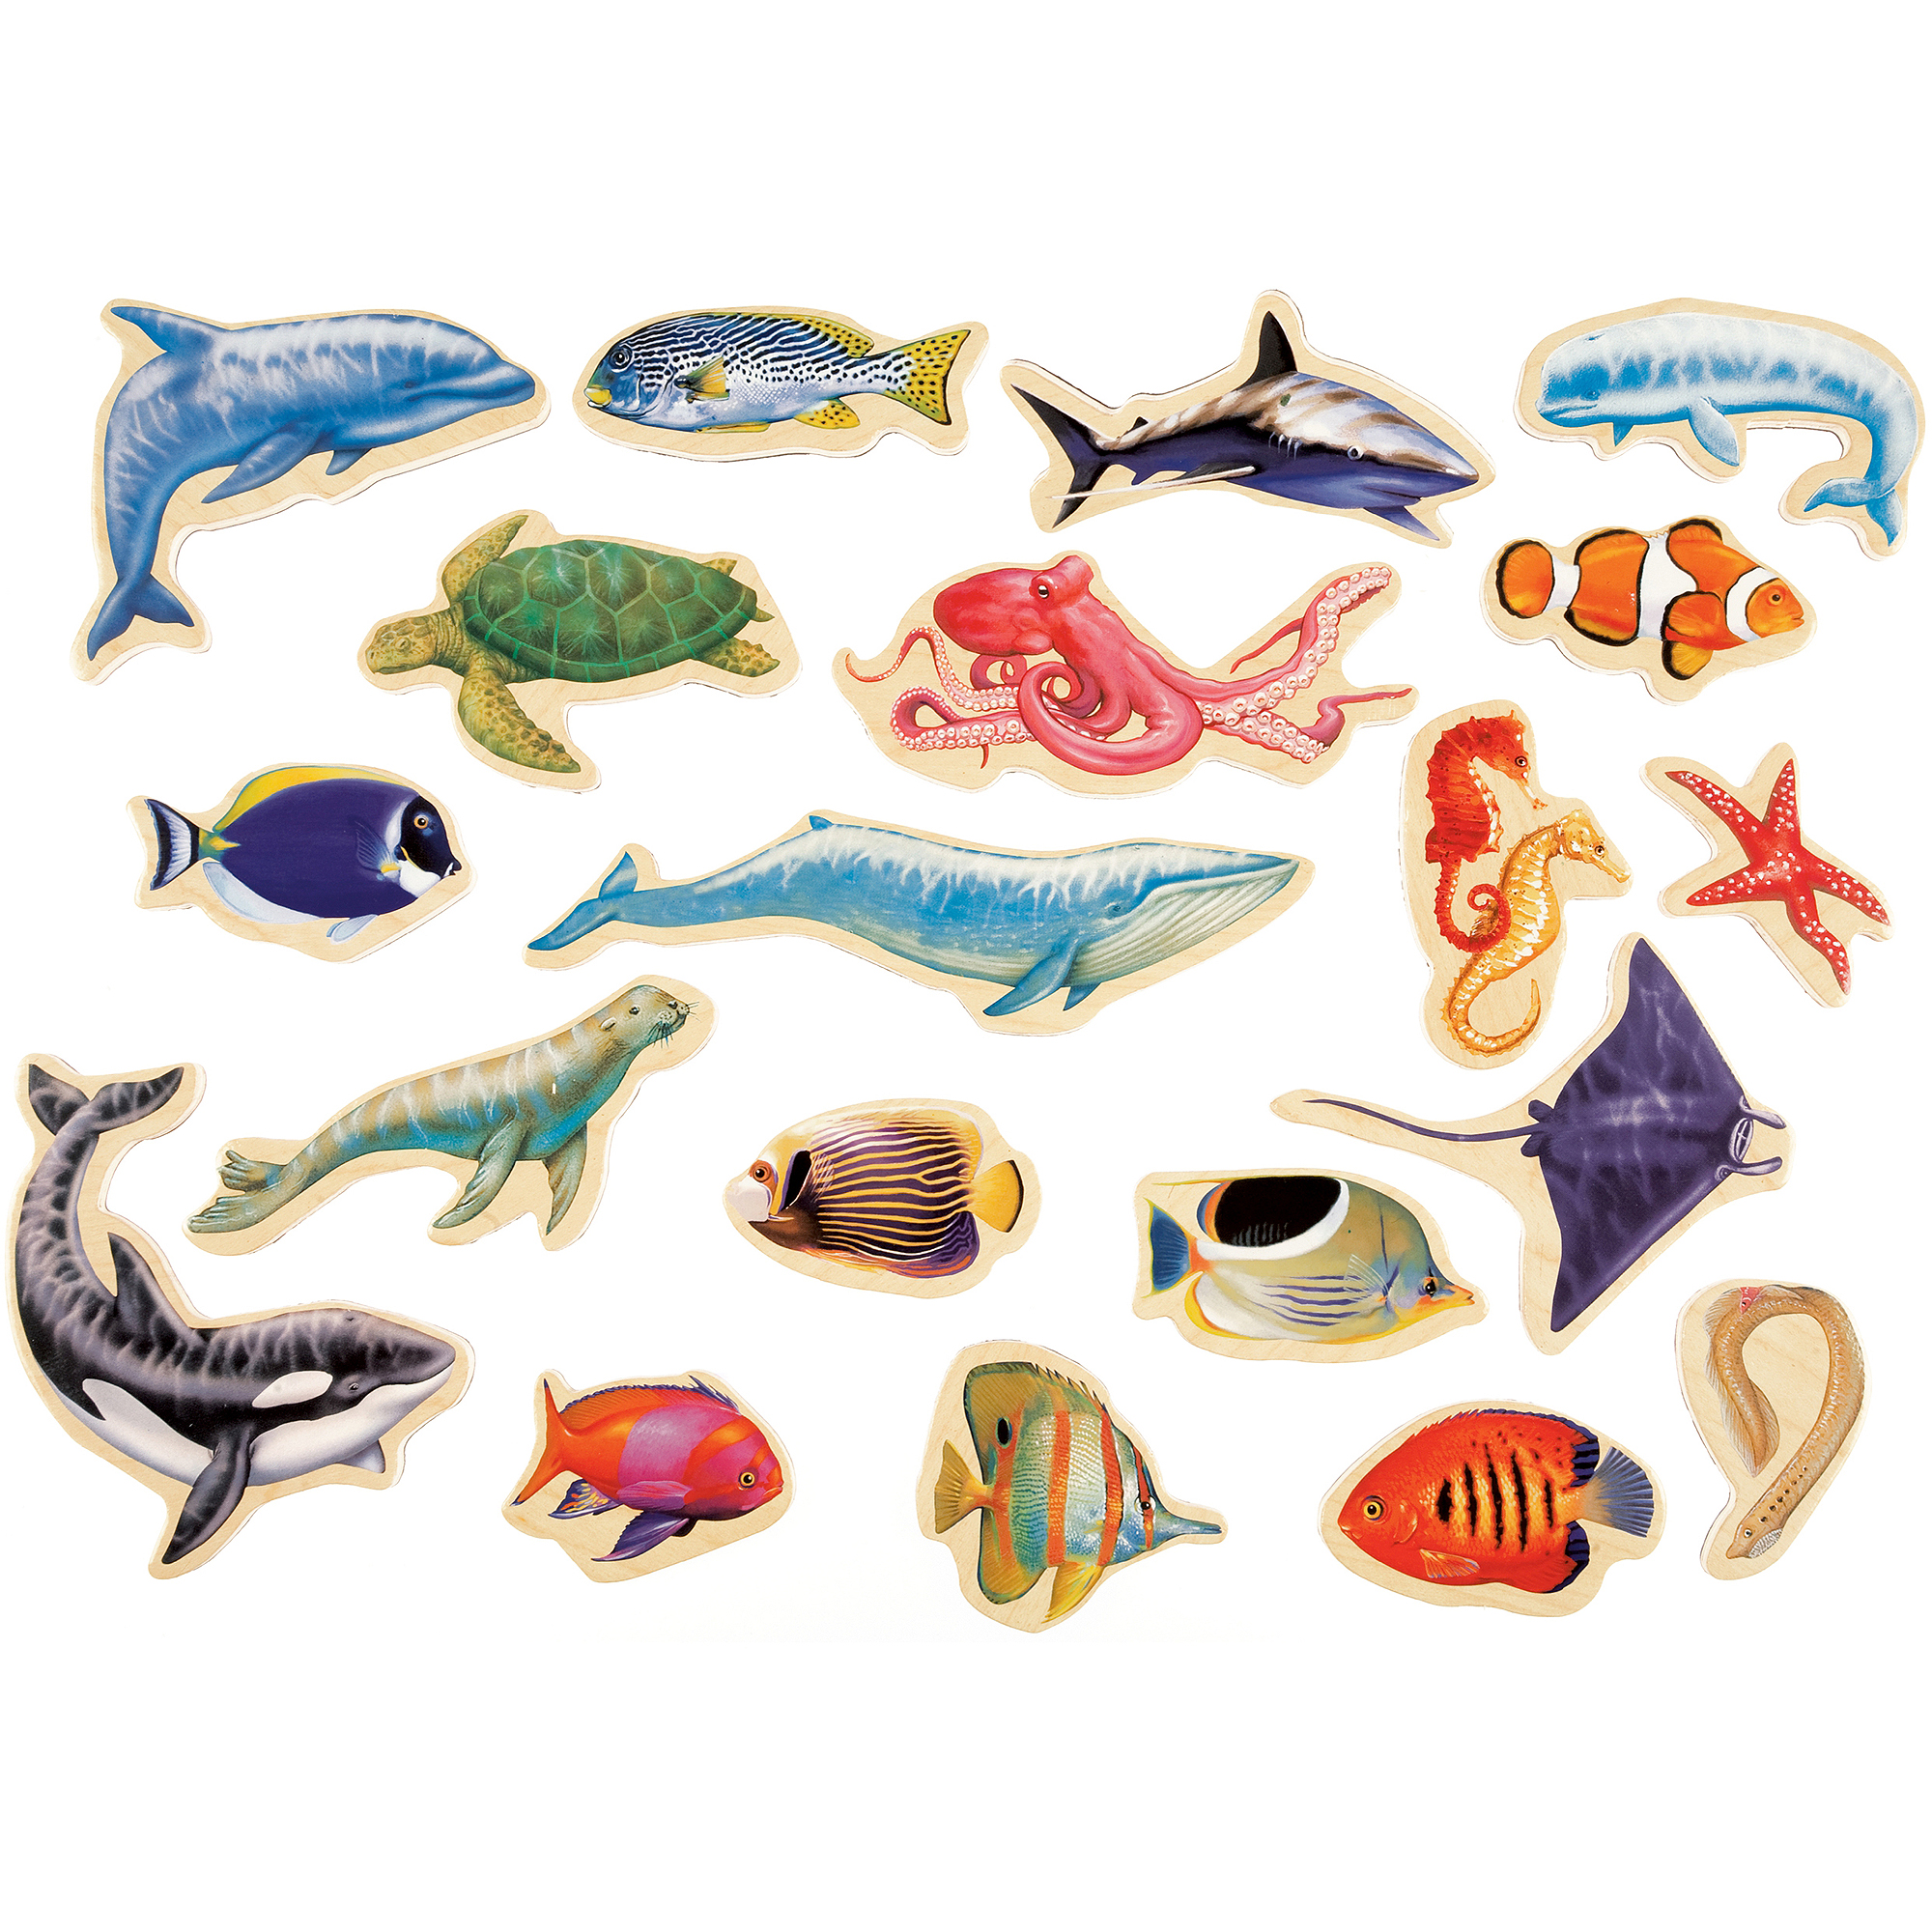 t s shure sea creatures wooden magnets magnafun set 20 pieces t s shure sea creatures wooden magnets magnafun set 20 pieces walmart com